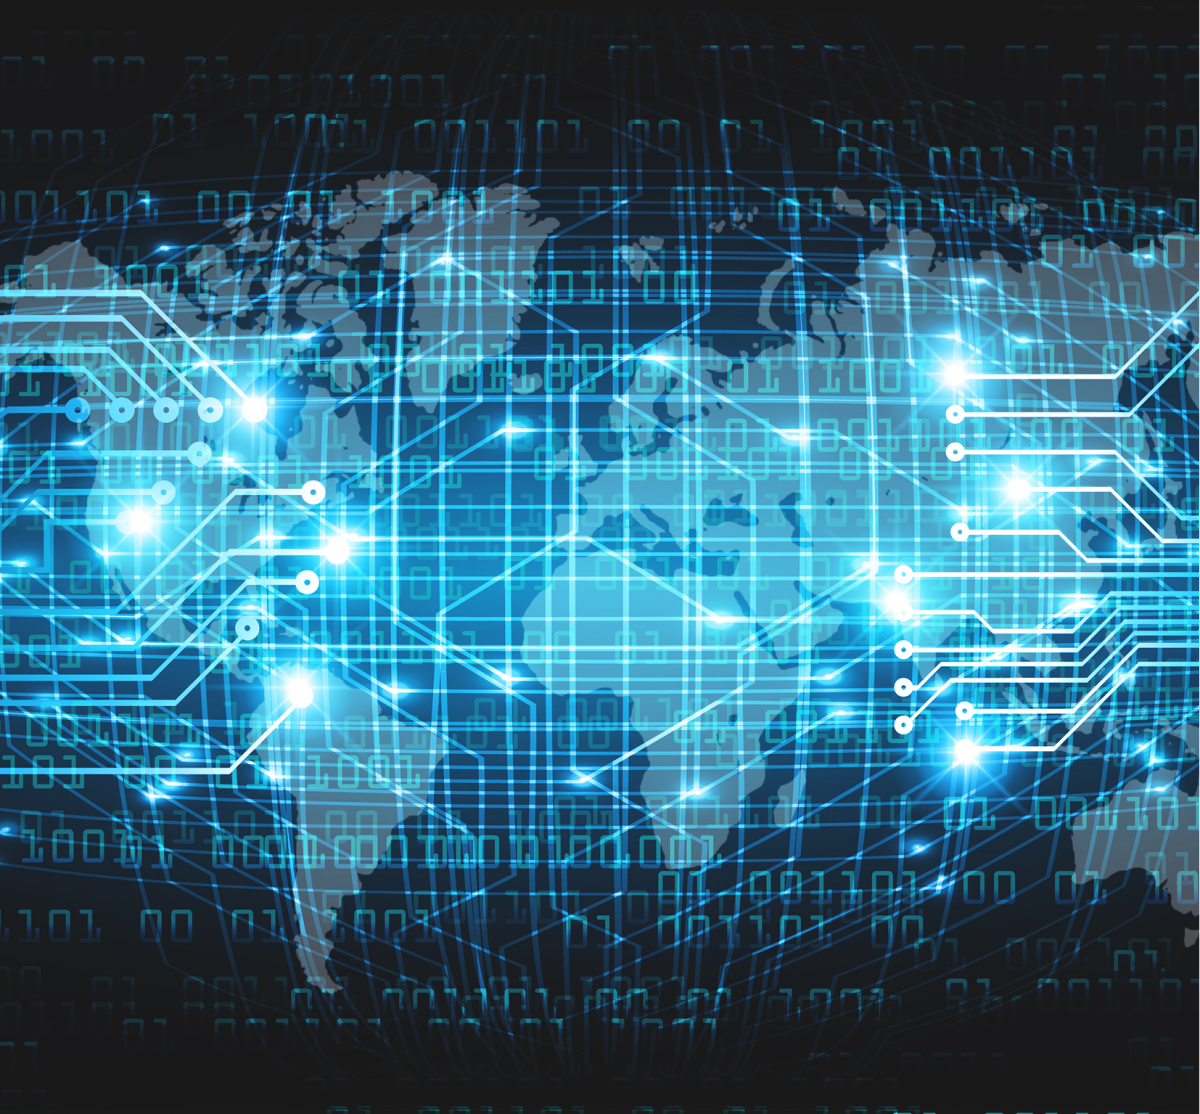 Global Cyber University Korea: Conflicts And Alliances In Cyberspace